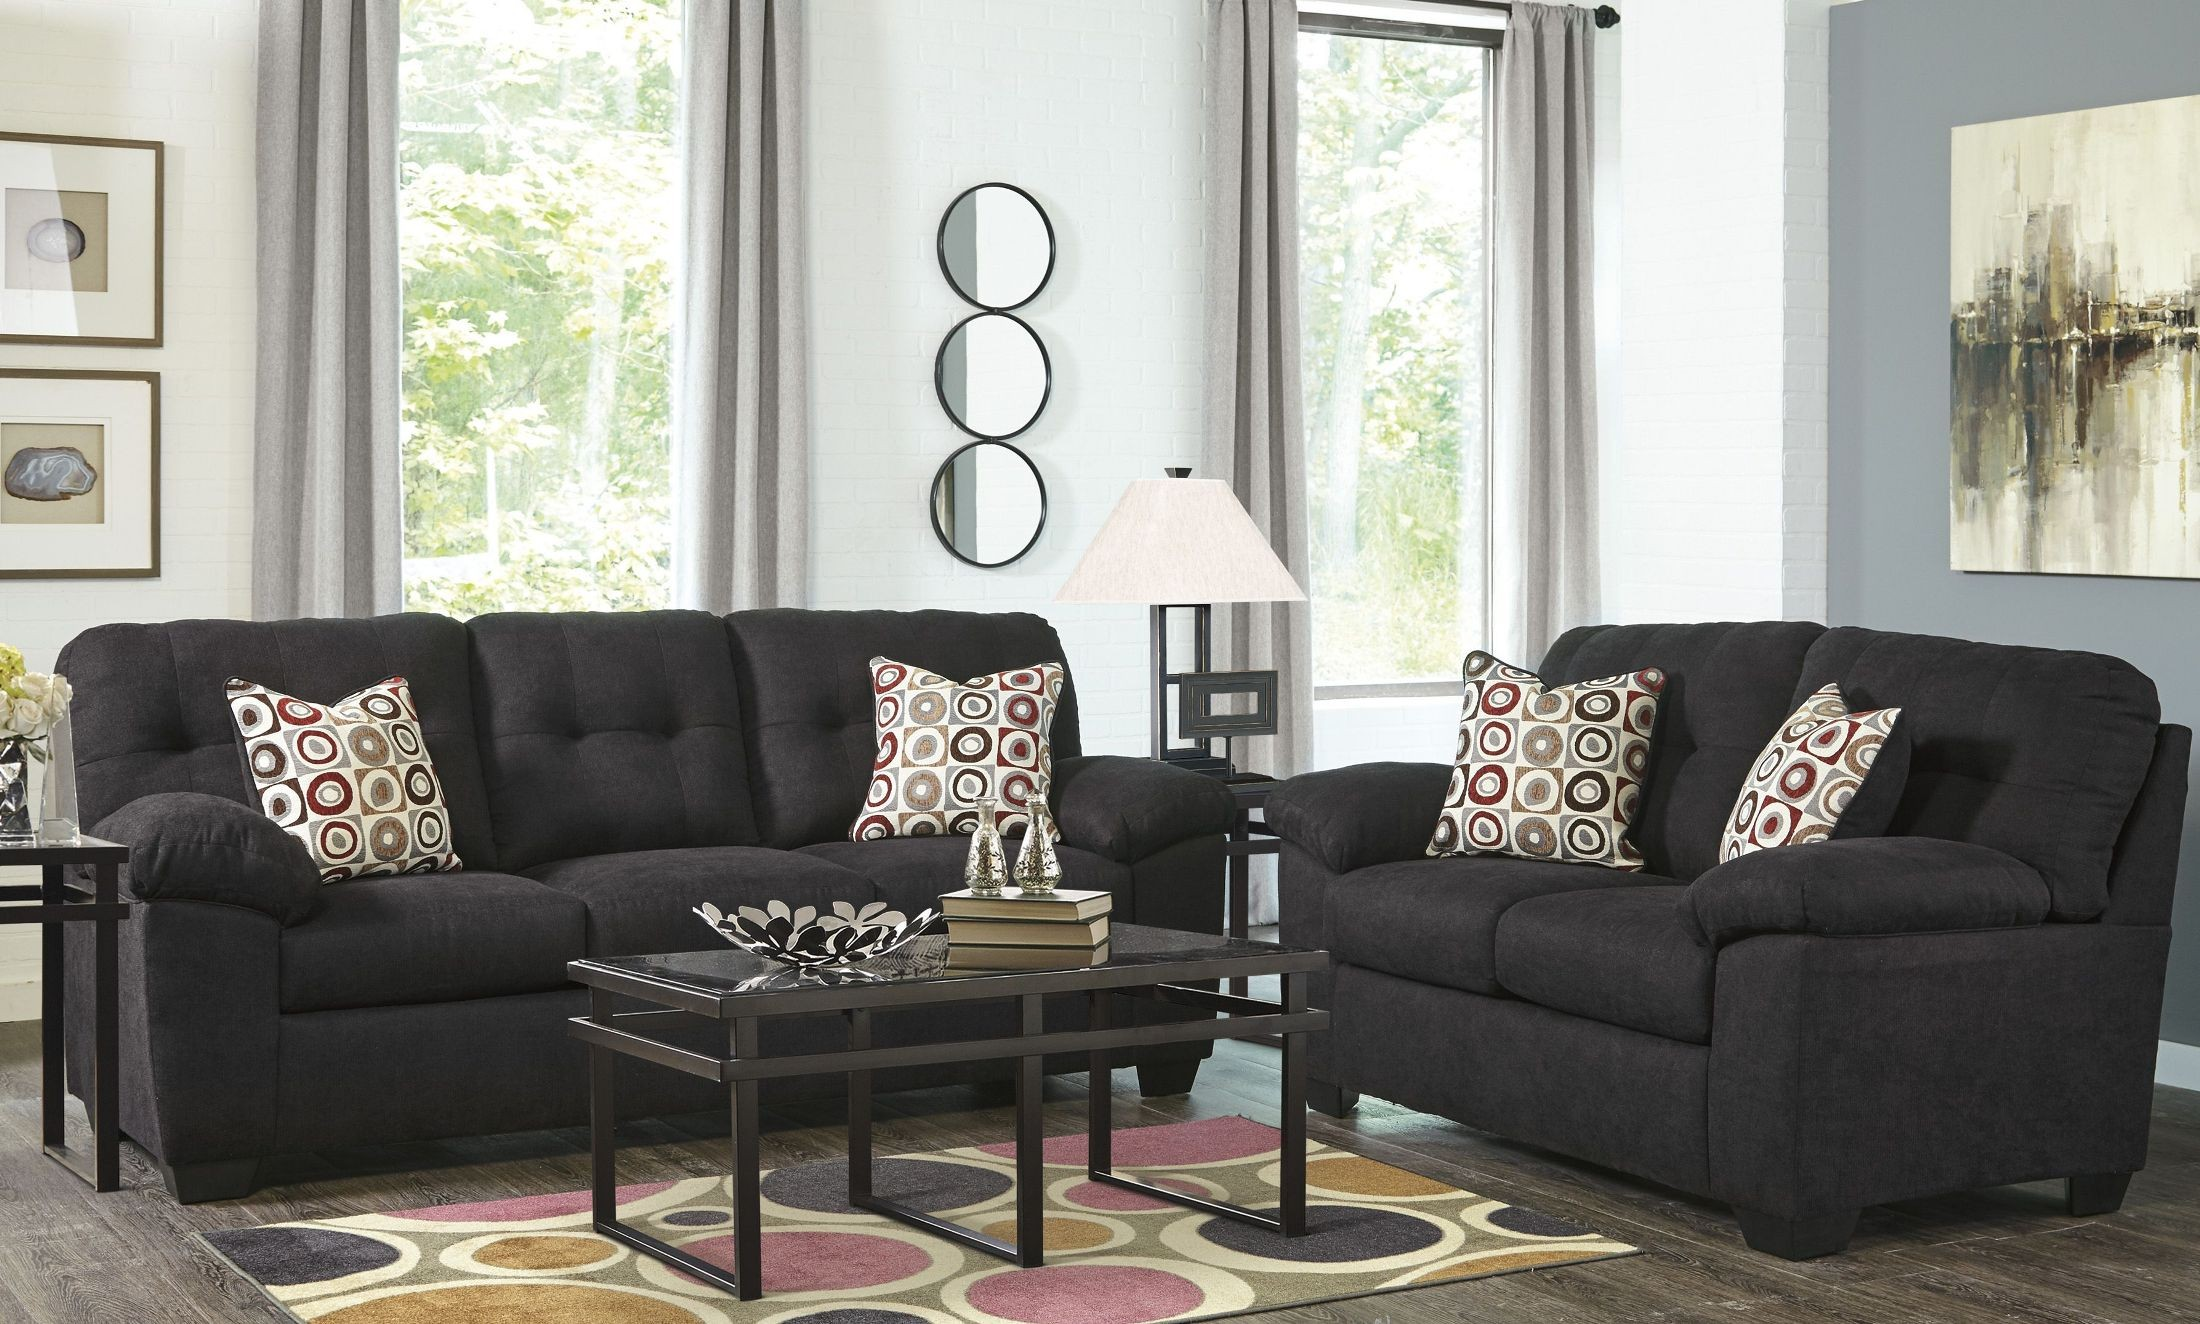 ackerly ebony 2pc sofa loveseat set dallas tx living